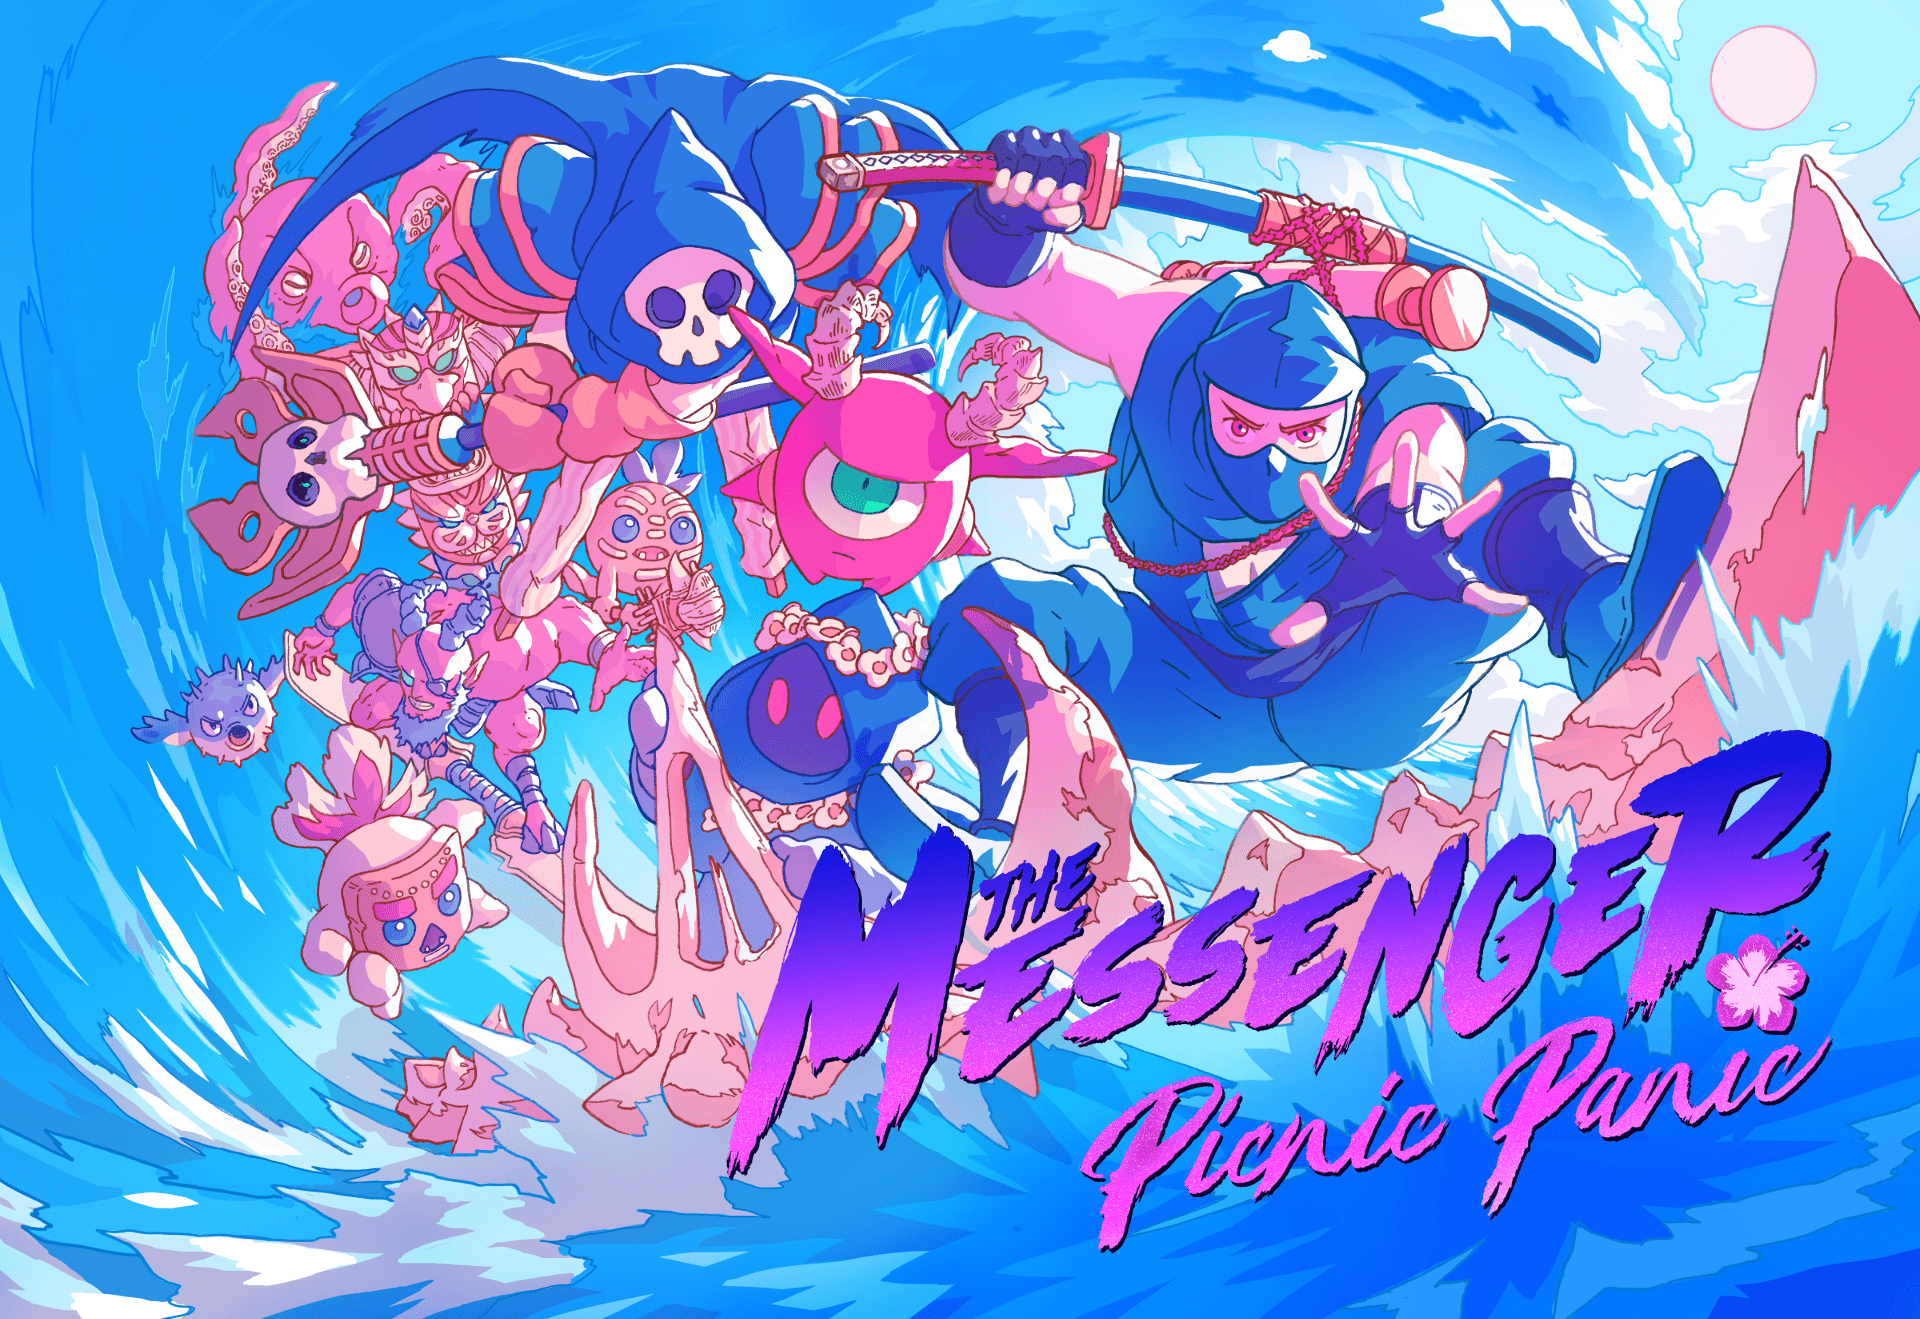 FREE DLC for The Messenger out now!